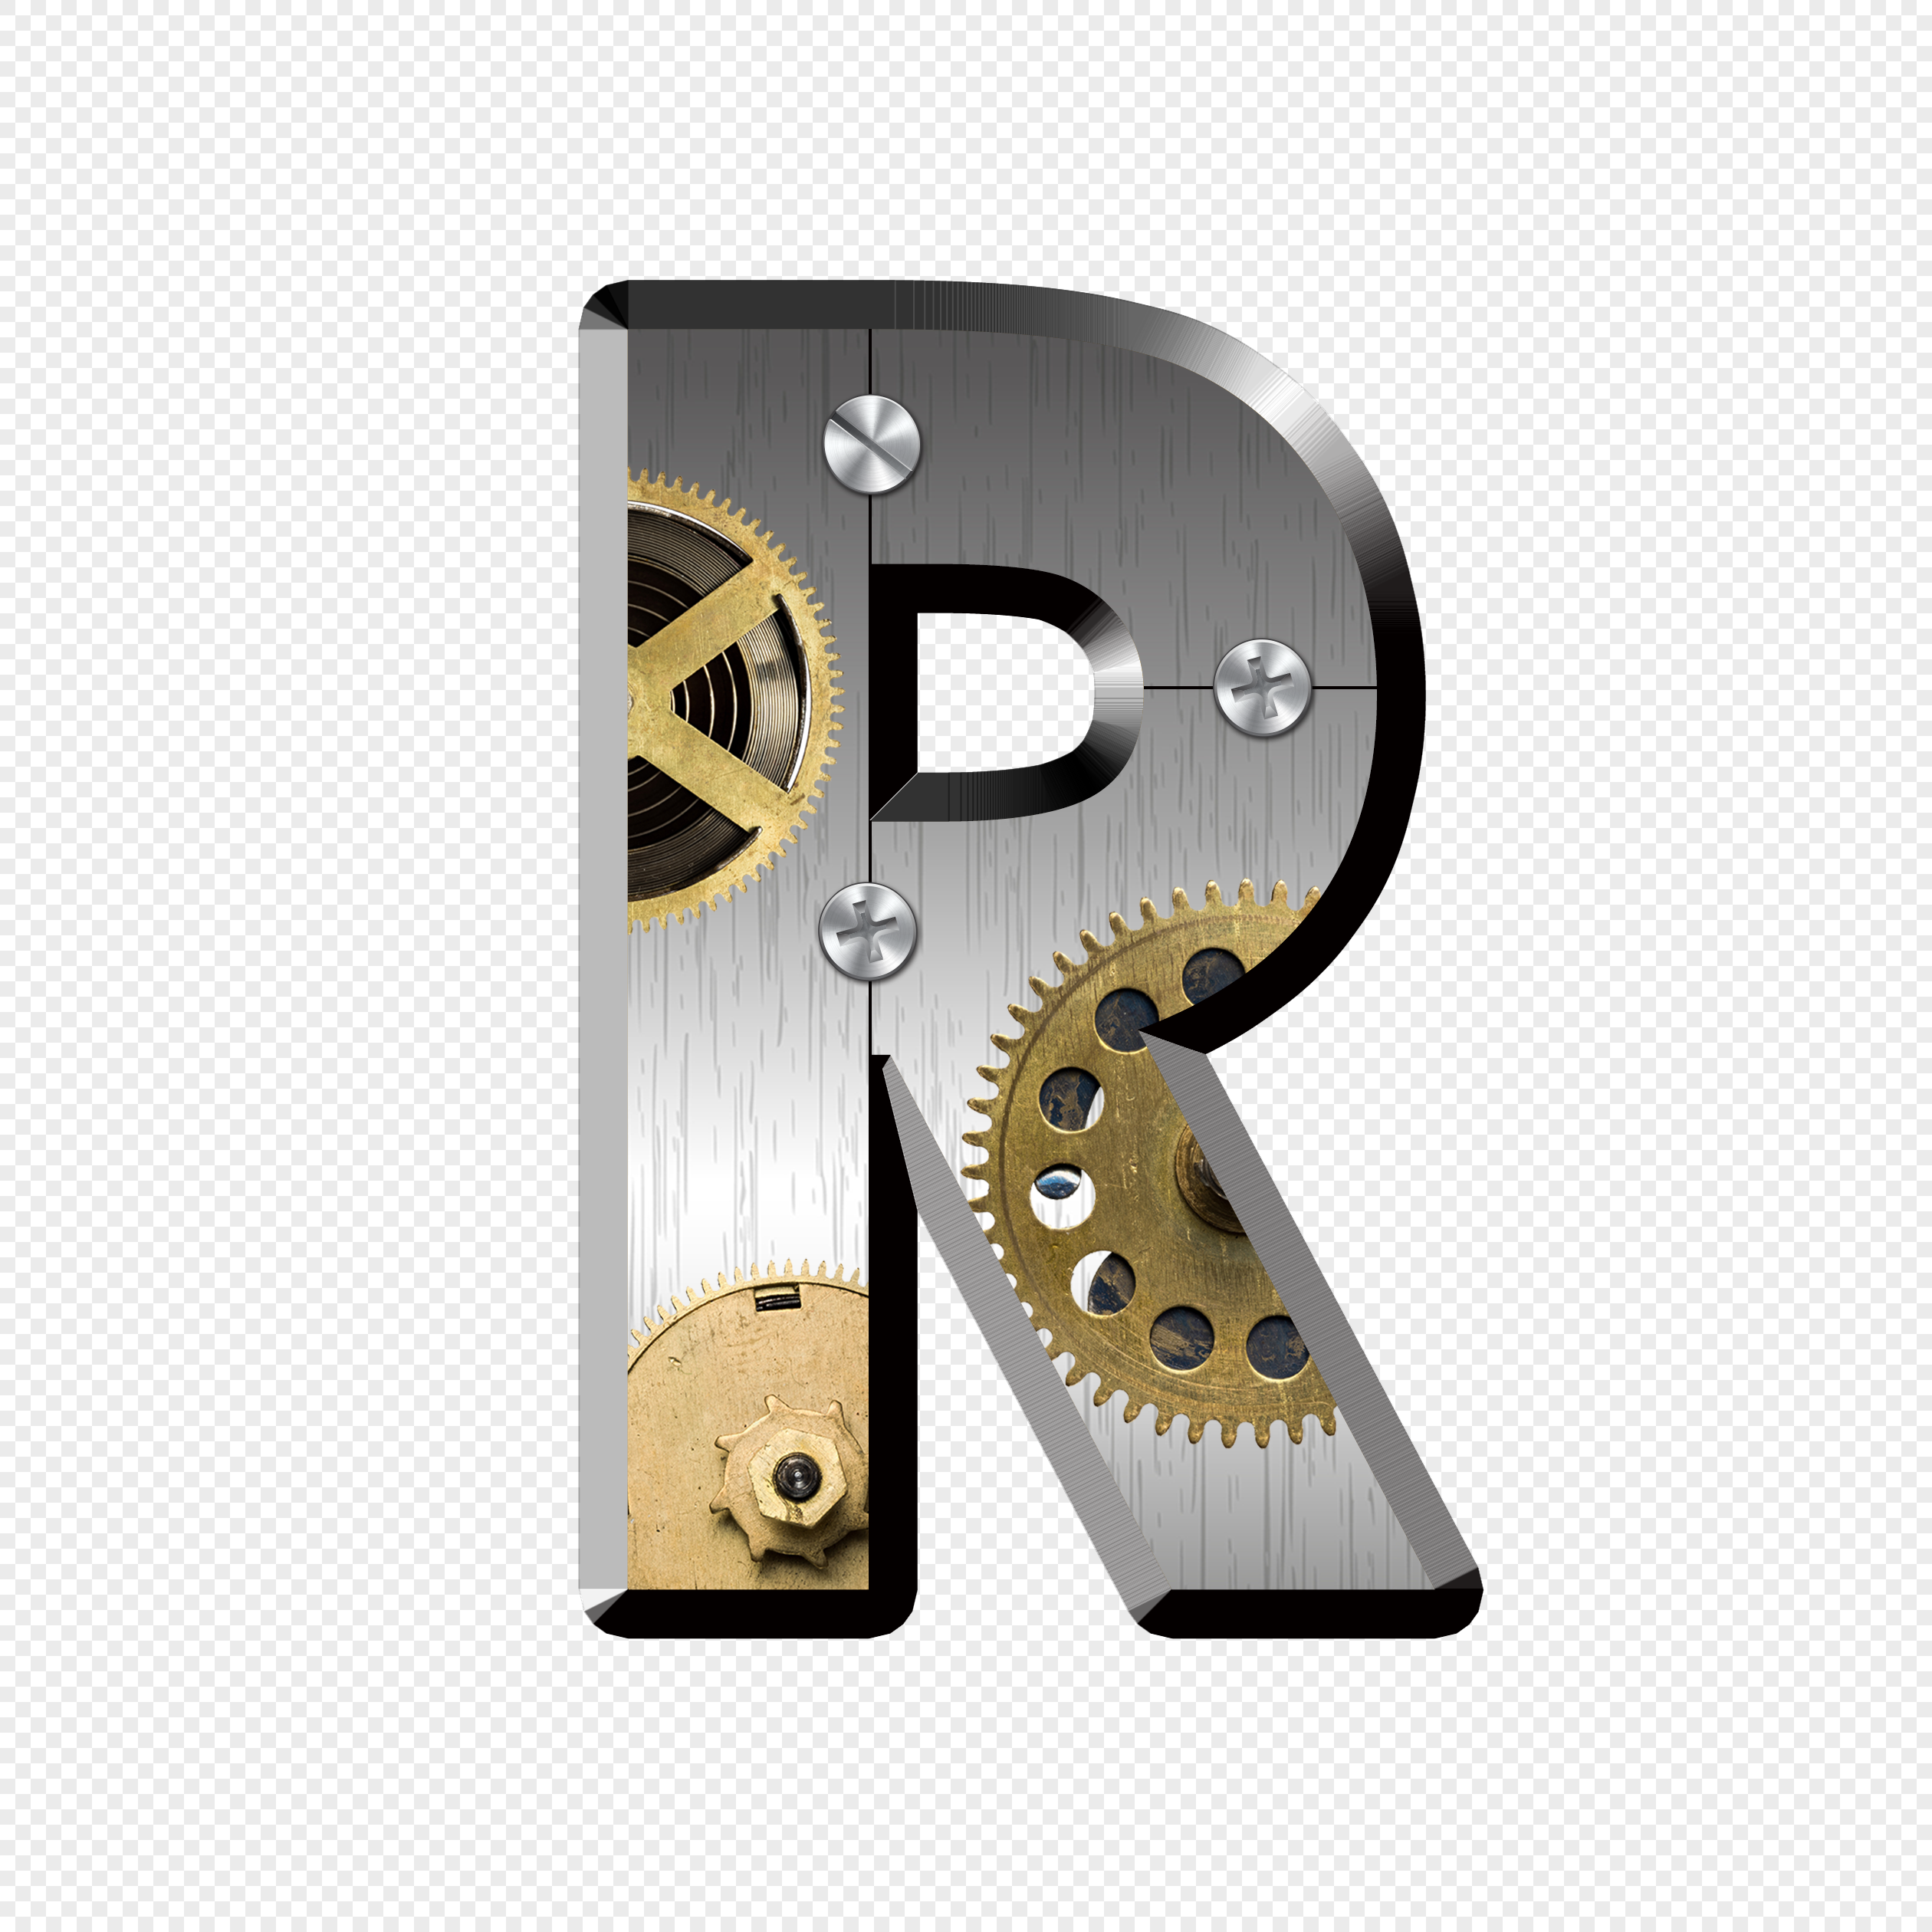 Metal Letter R Png Image Picture Free Download 400532397 Lovepik Com